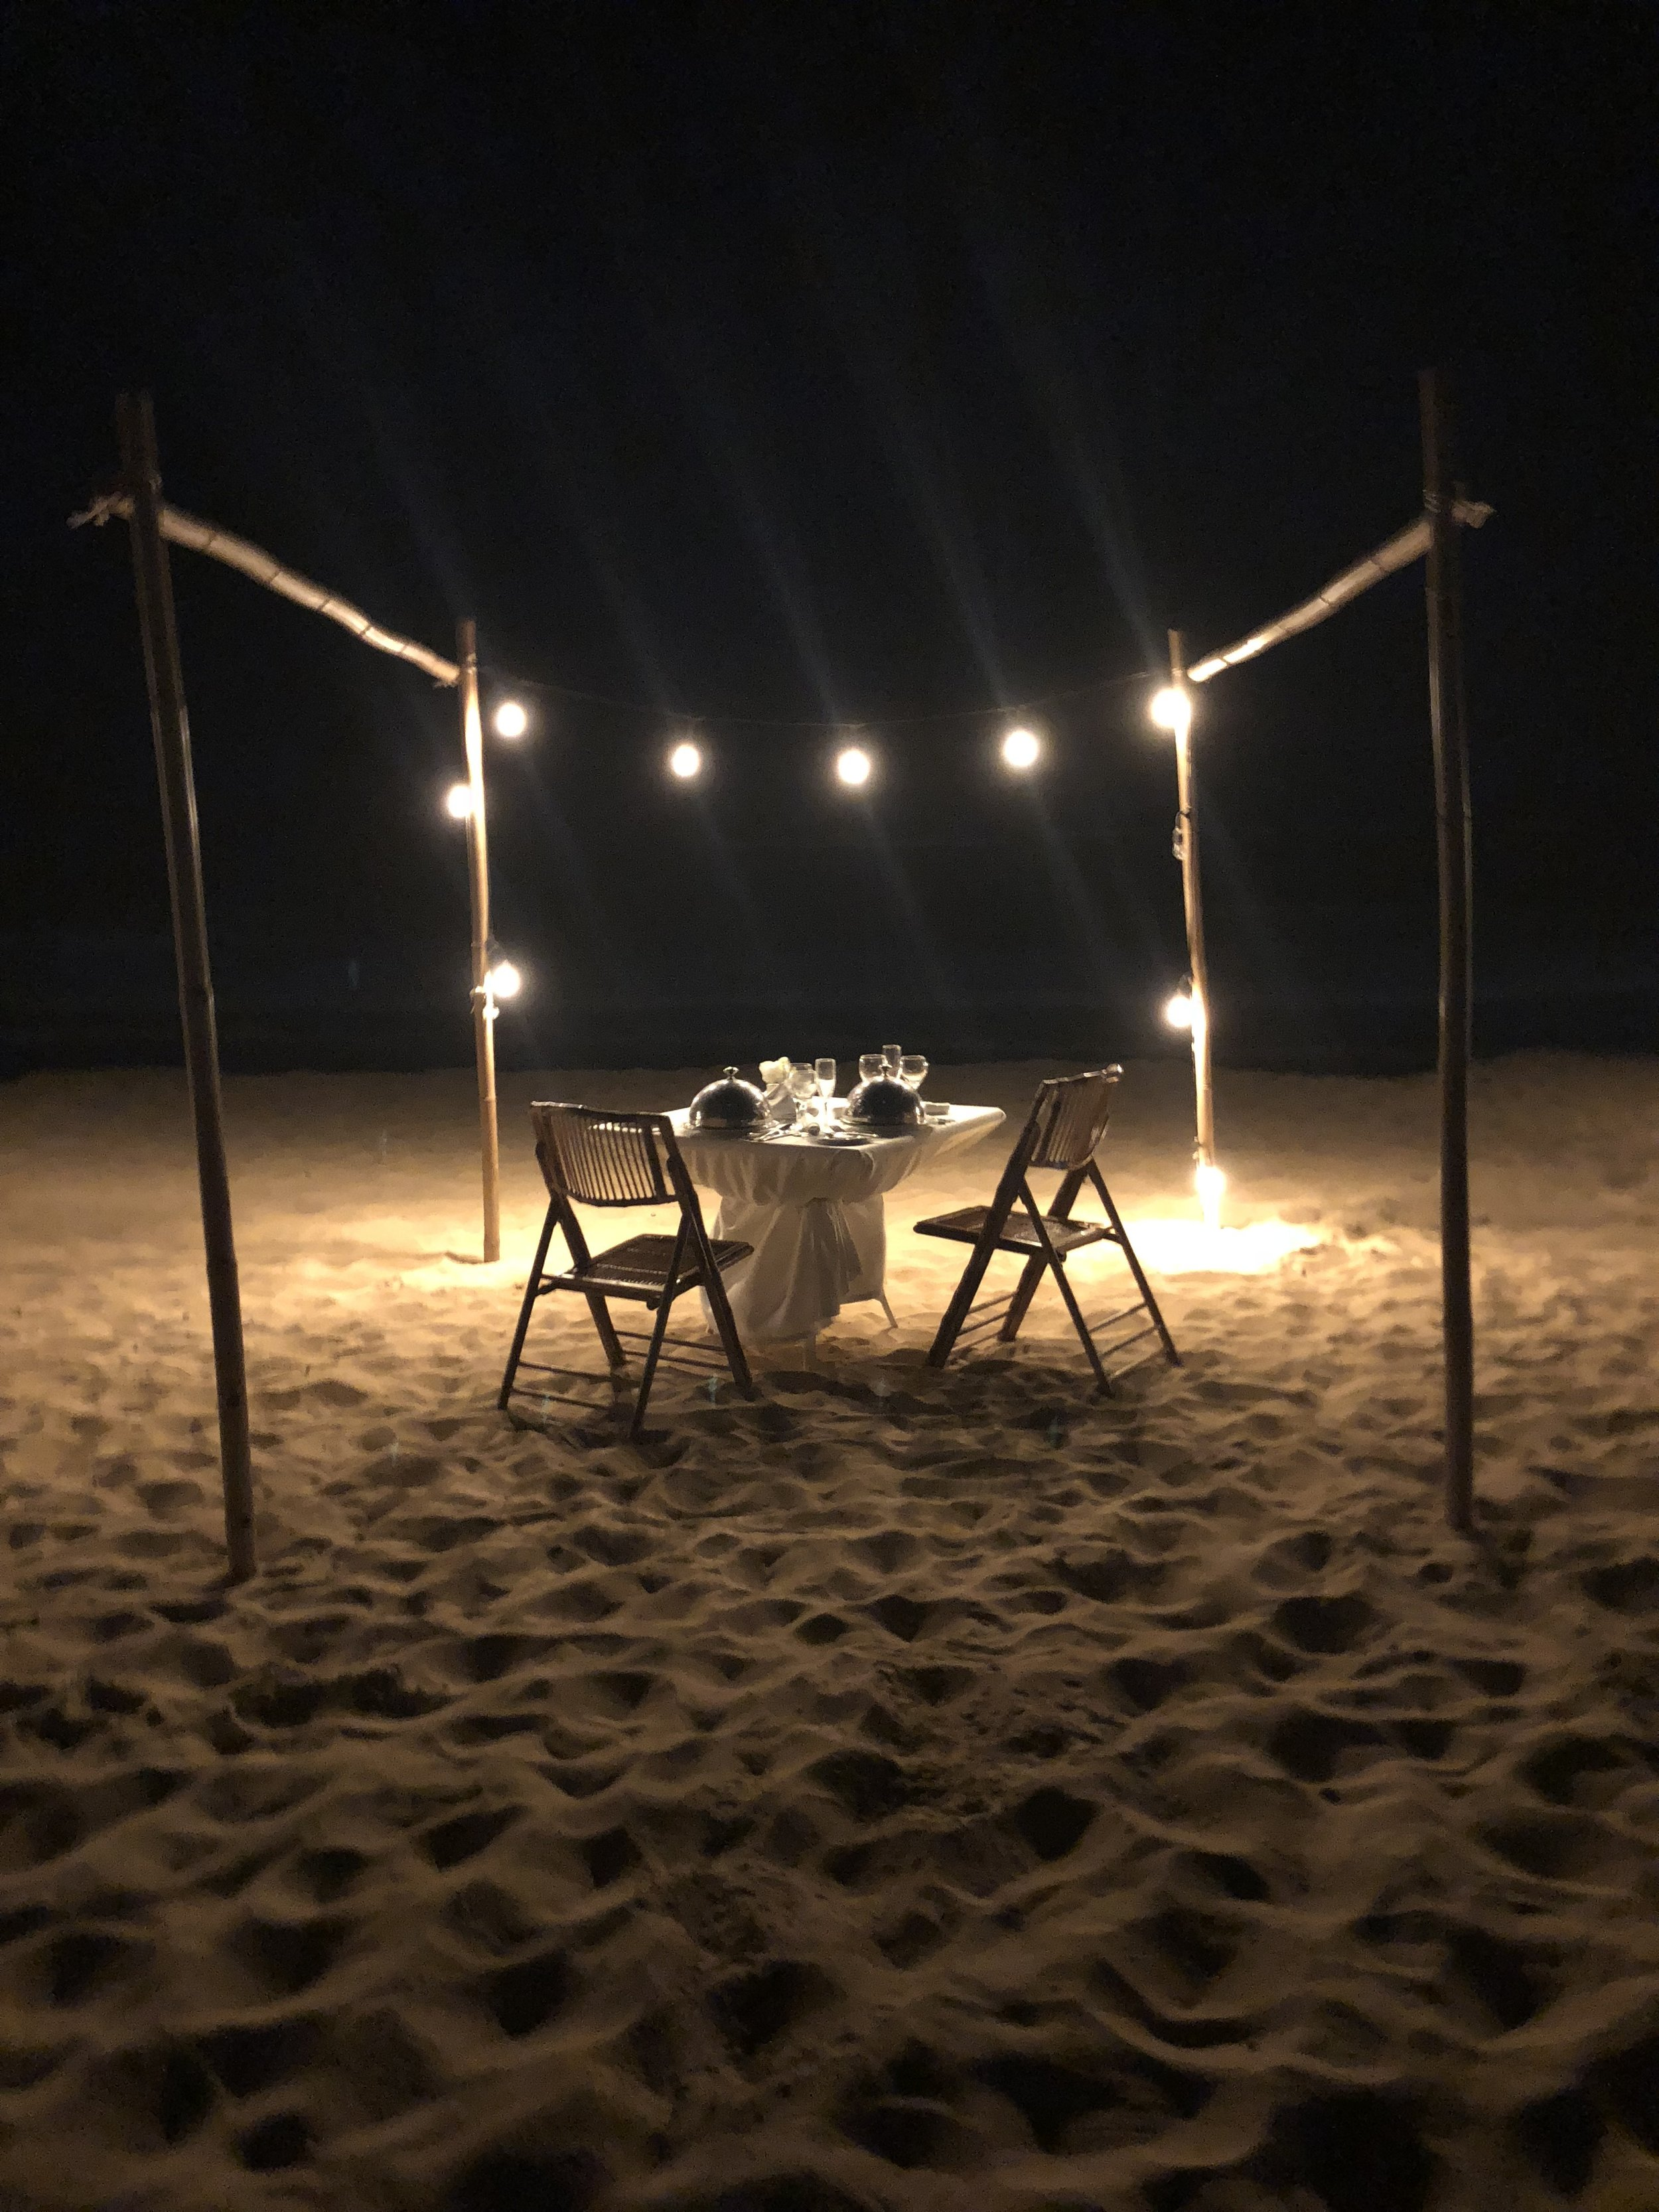 One of my favorite parts of the whole week was the private beach dinner!  It was a 5-course meal and it was so delicious! We set this up through the resort and got a 50% discount because of the package we selected. It was such a sweet dinner. The service was amazing! I had steak and lobster and Hunter had shrimp and scallops.  I would do this again ten million times!